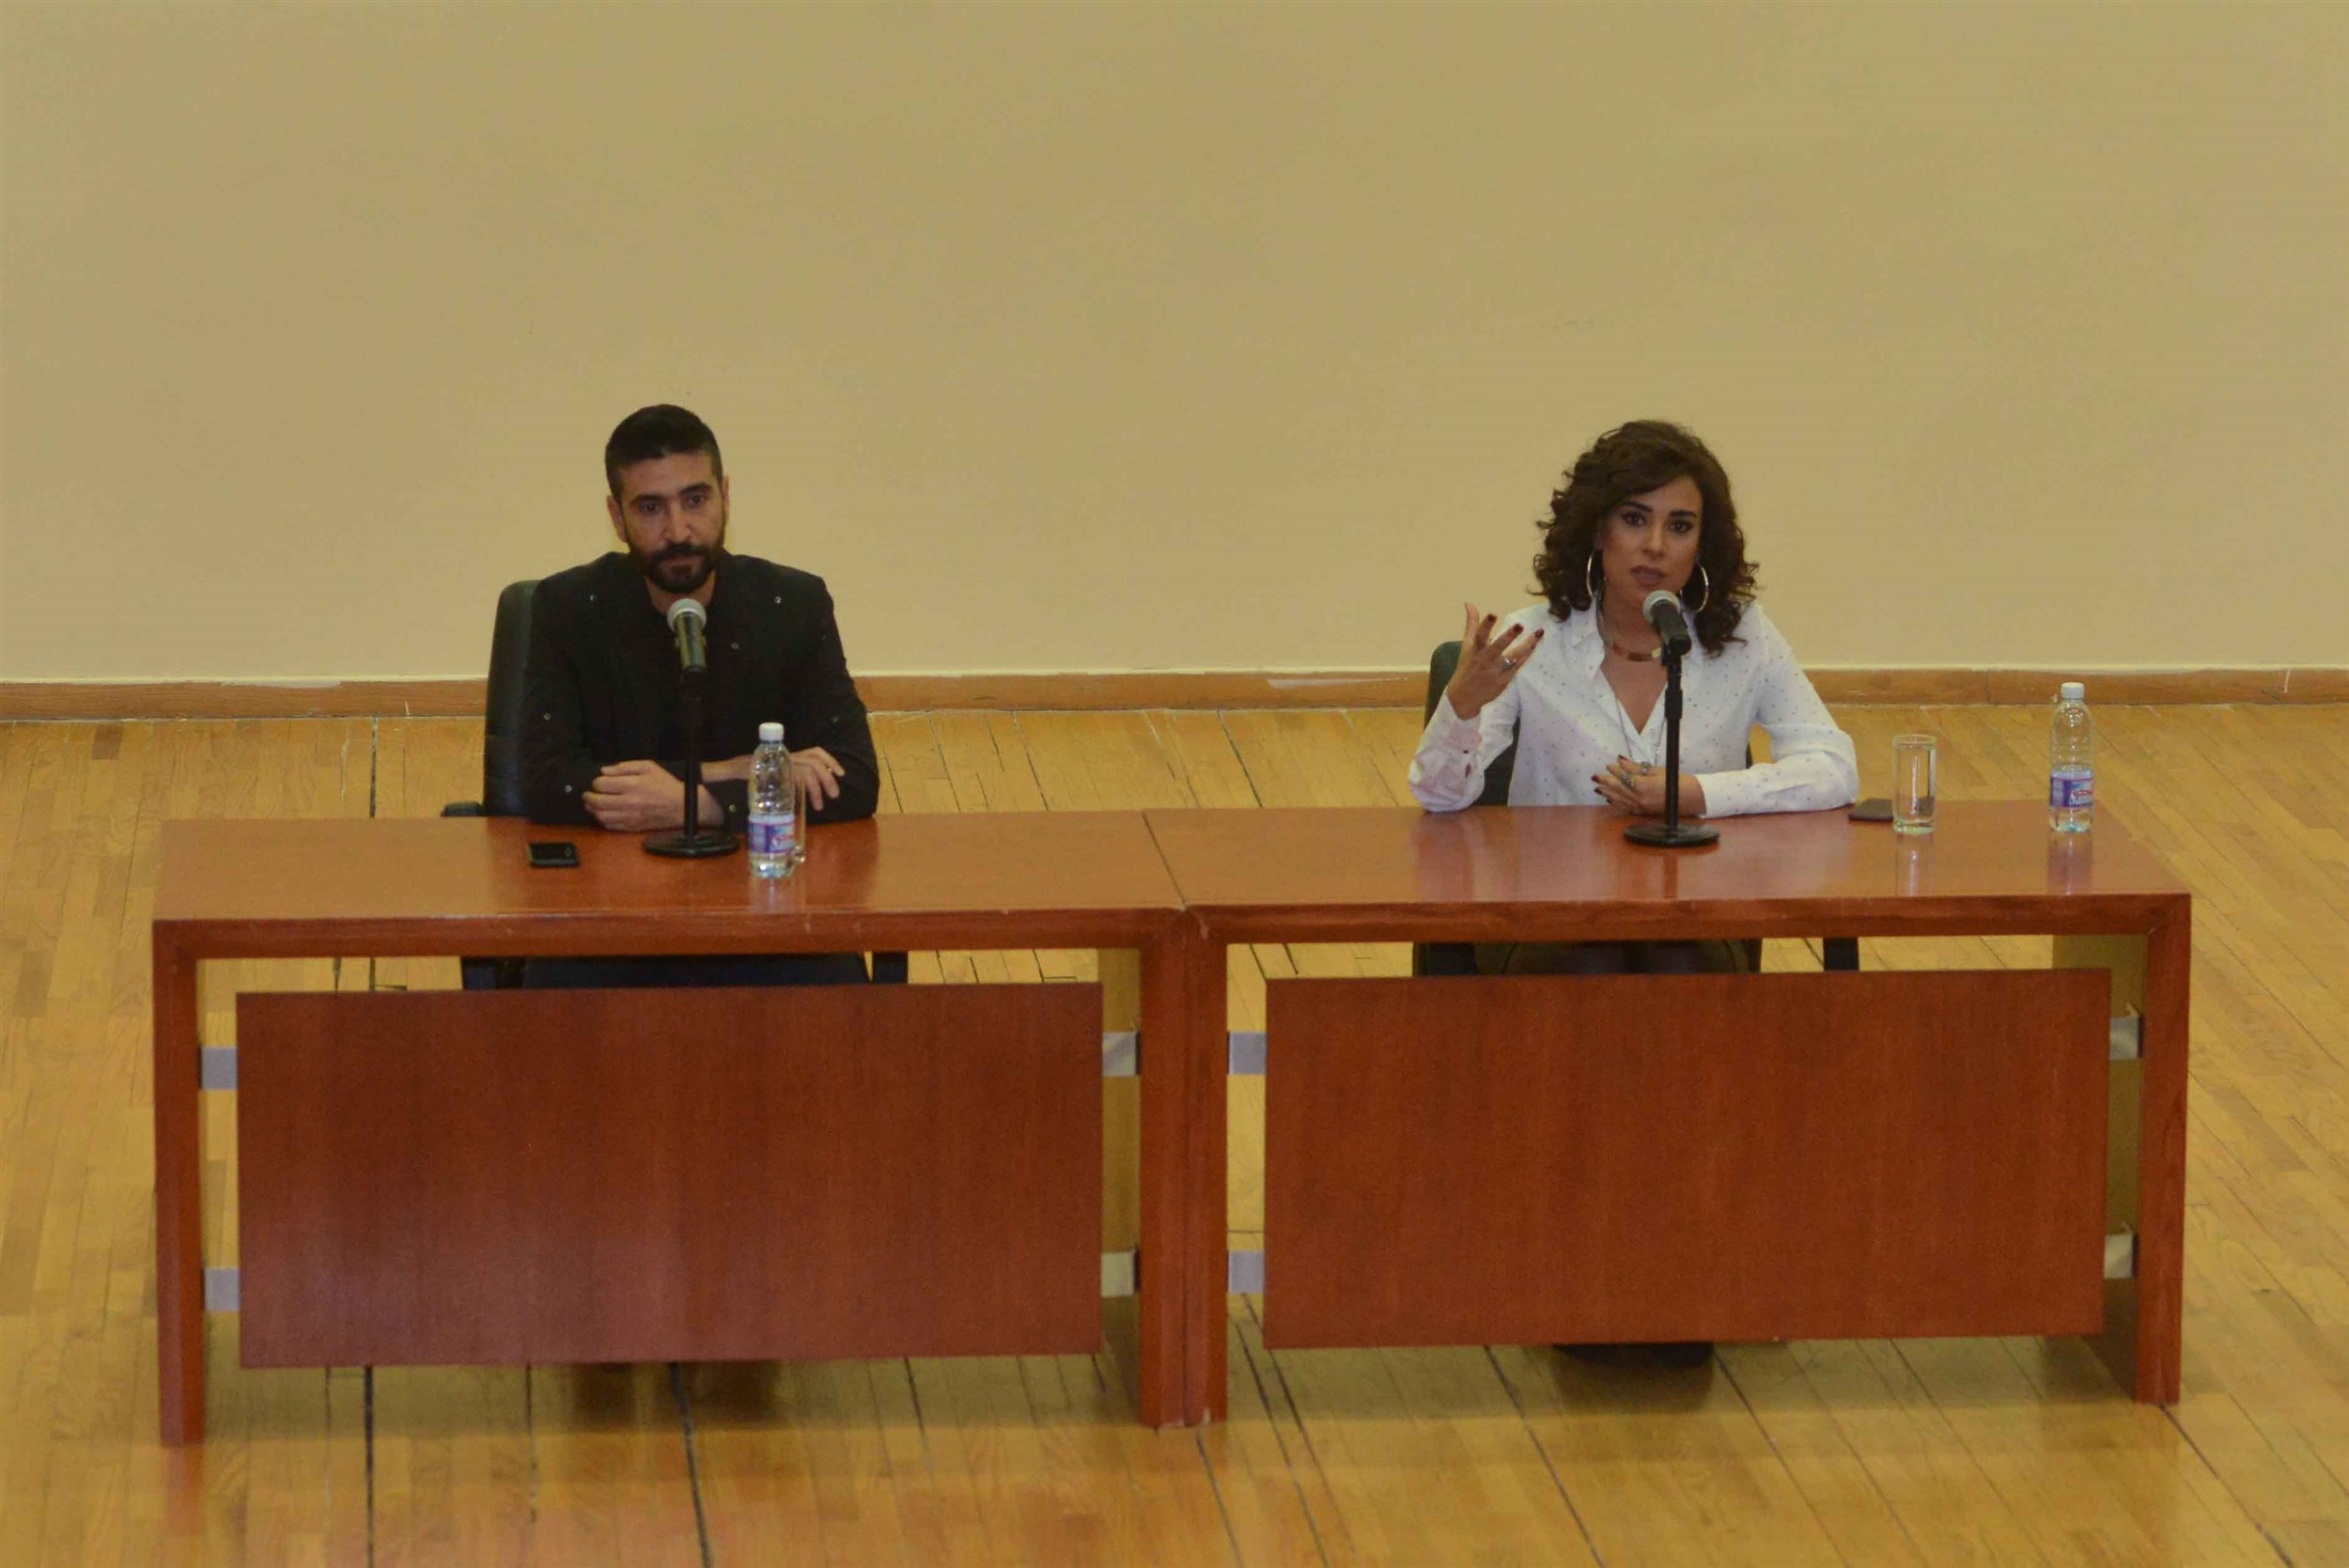 celebrity guest speakers actor/comedian wissam sabbagh and actress andree nacouzi share their own stories of the road to success, and daring to dream.